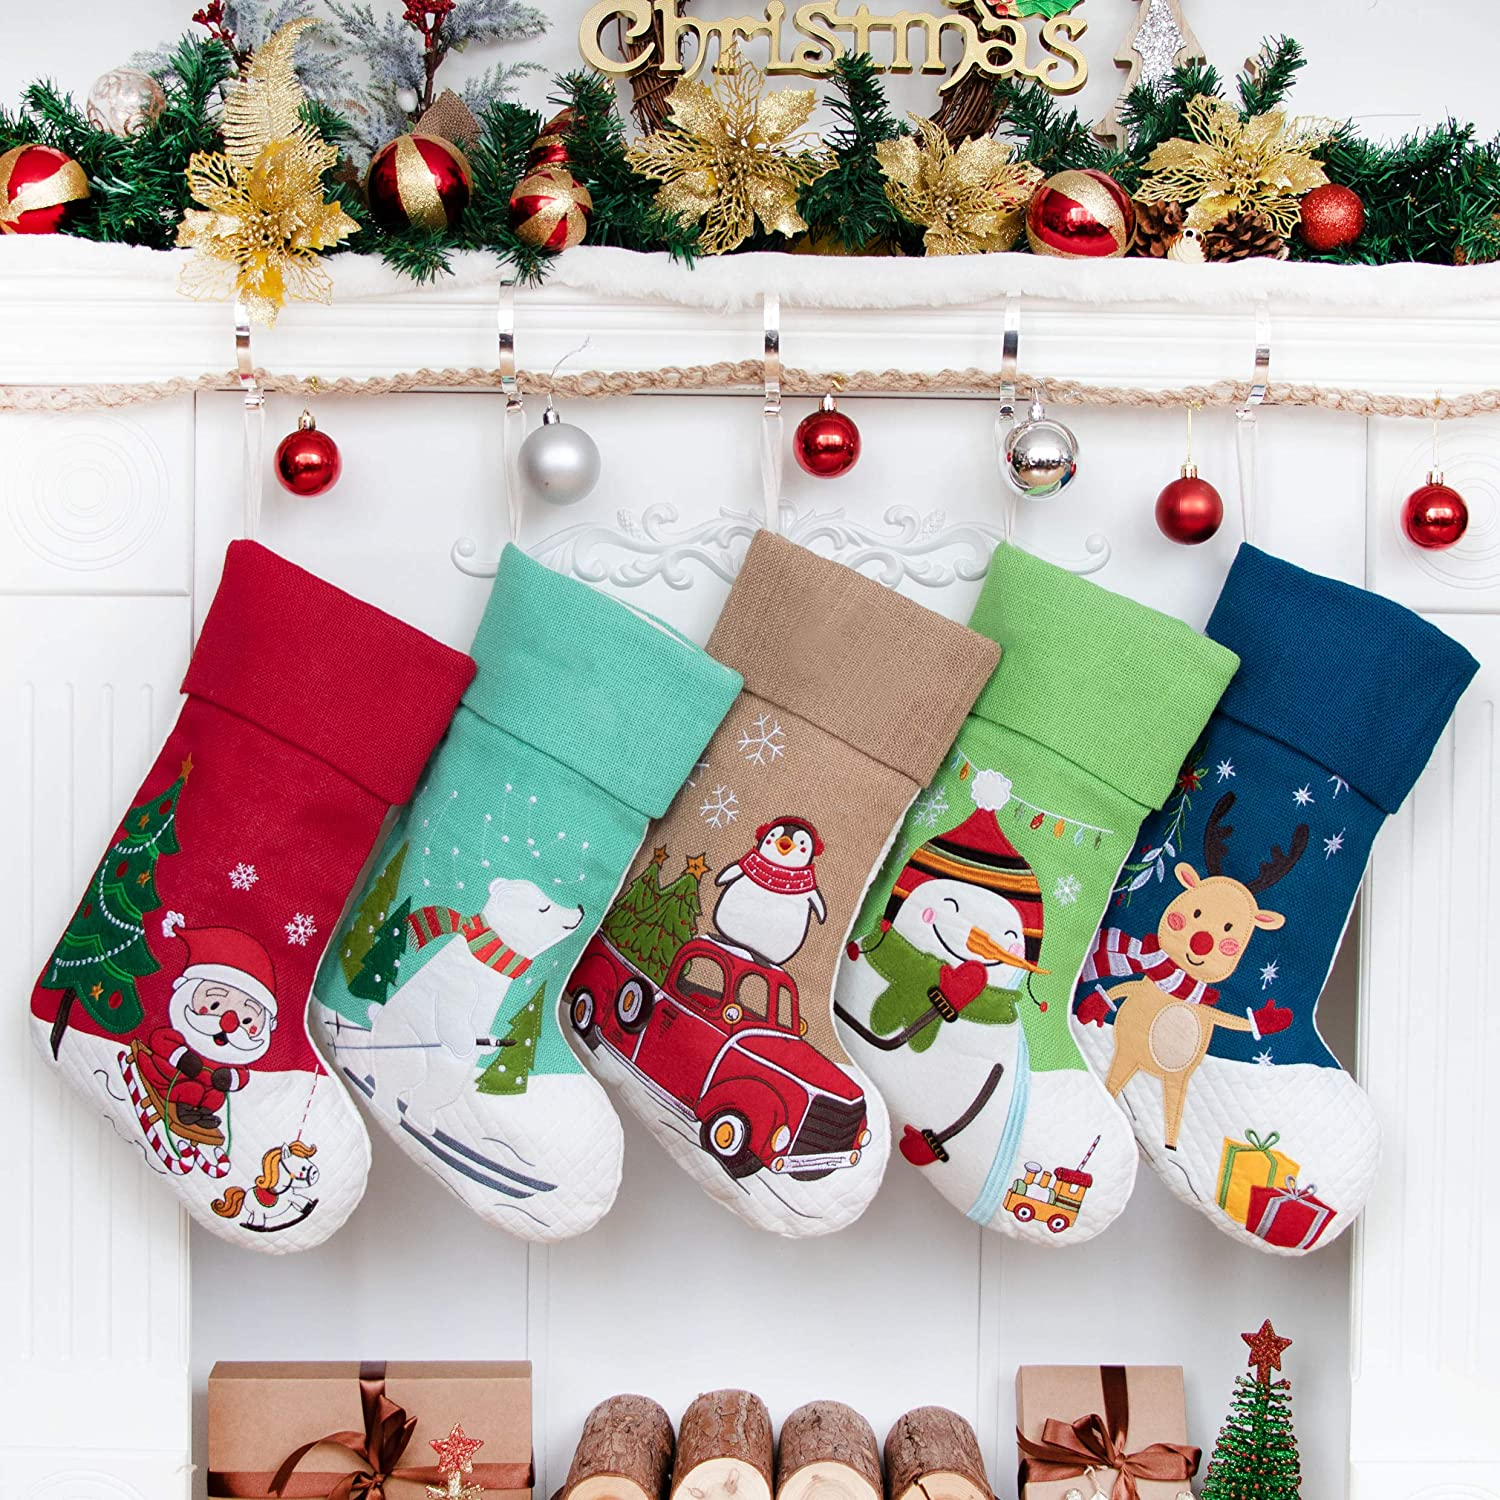 Embroidered Linen Applique Burlap Fireplace Hanging Christmas Ornament for Family Decorations Holiday Xmas Gift LUBOTS 2020 New 4 Pack Christmas Stockings 21inch